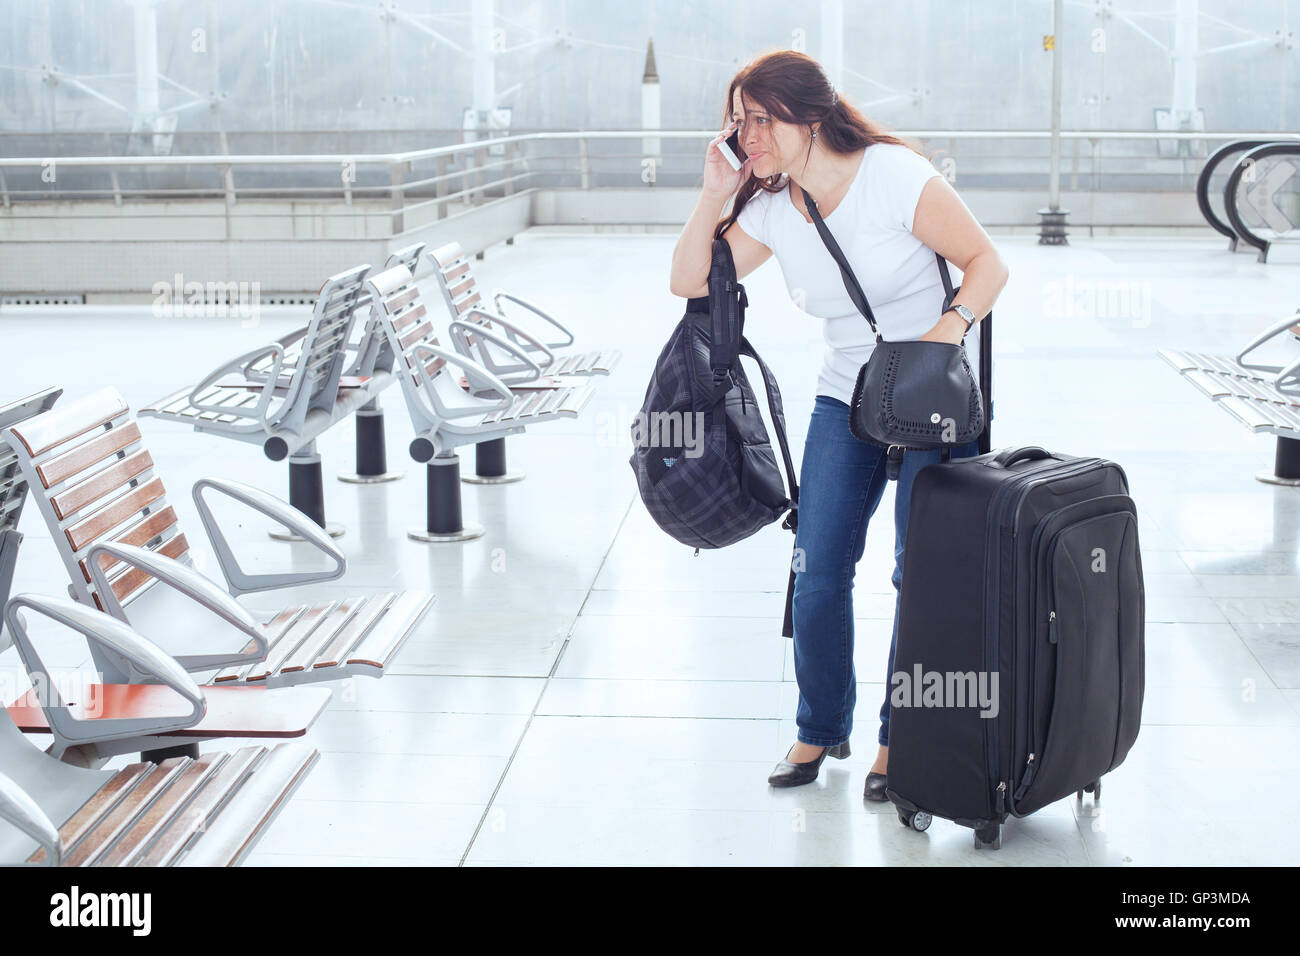 stressed troubled woman in the airport with plenty of bags and luggageStock Photo